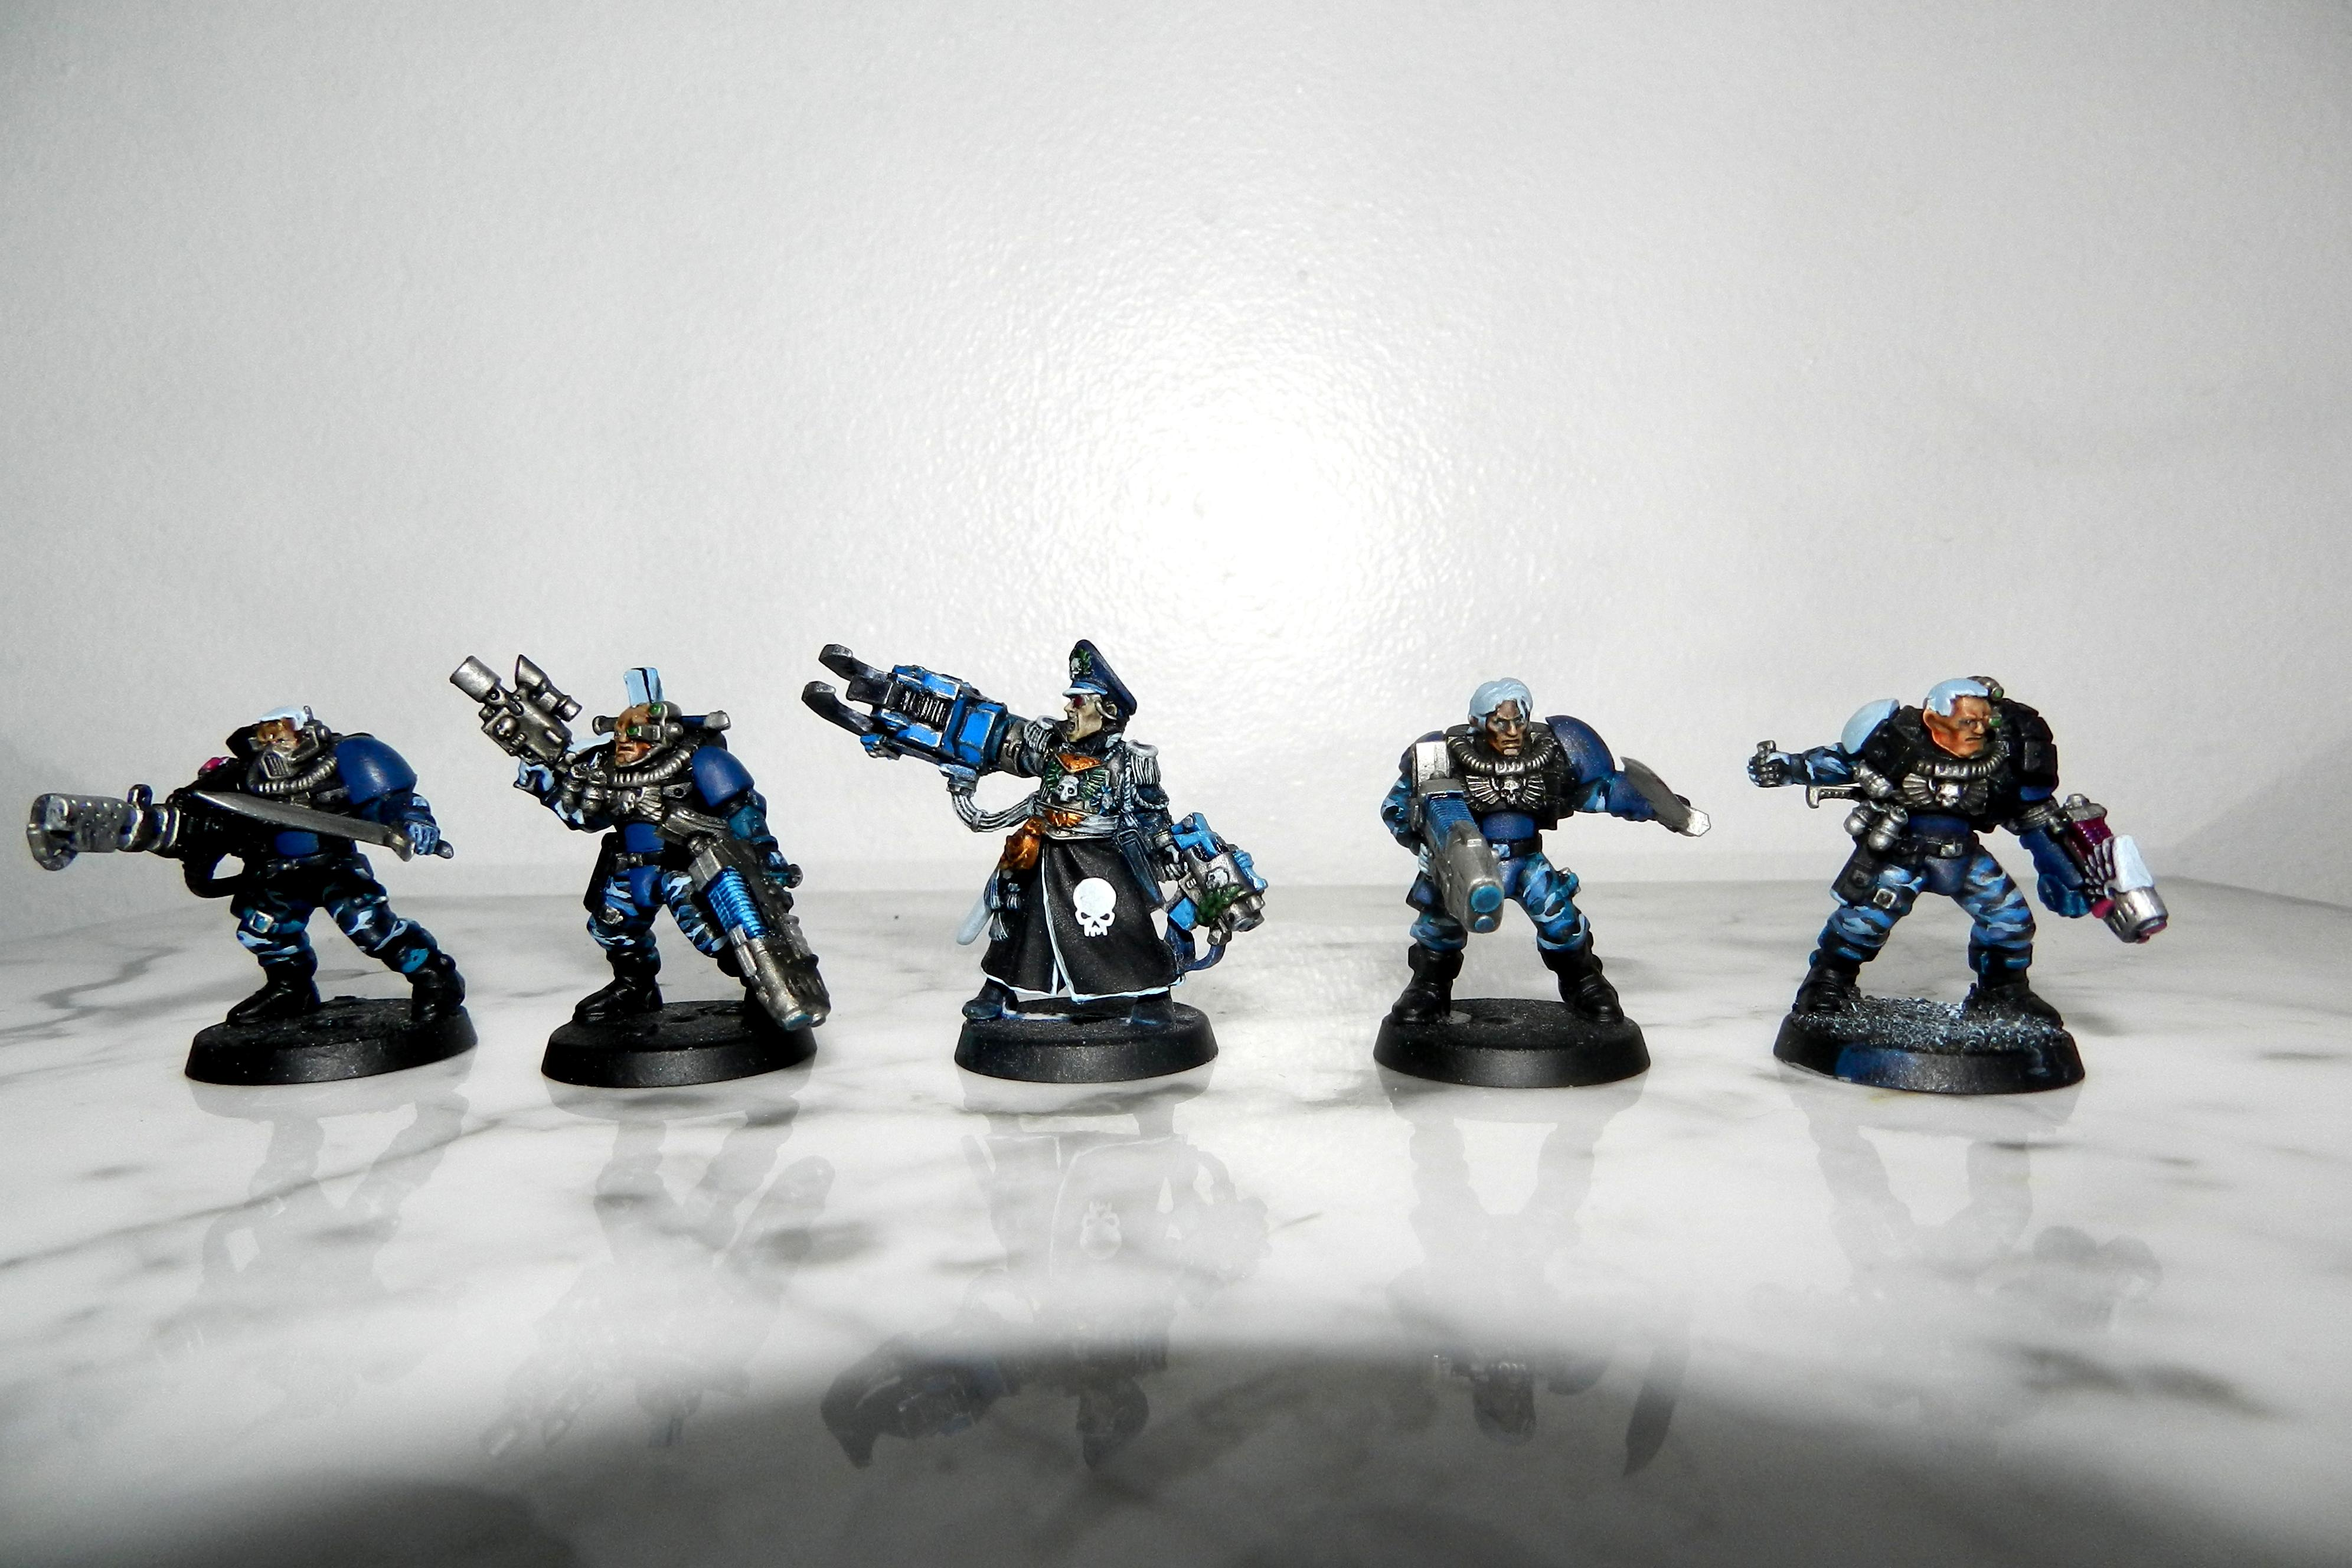 Adeptus Arbites, Bionics, Cadians, Camouflage, Captain, Carapace, Carapace Armour, Ccs, Colonel, Command Squad, Commander, Commissar, Commissar Yarrick, Company Command Squad, Count As, Flamer, Gears Of War, Grenadier, Grenadiers, Guardsmen, Lord Commissar, Medic, Meltagun, Officer, Officers, Plasma Gun, Plasma Pistol, Power Fist, Power Klaw, Scouts, Space Wolves, Storm Bolter, Urban, Urban Camo, Warhammer 40,000, Work In Progress, Yarrick